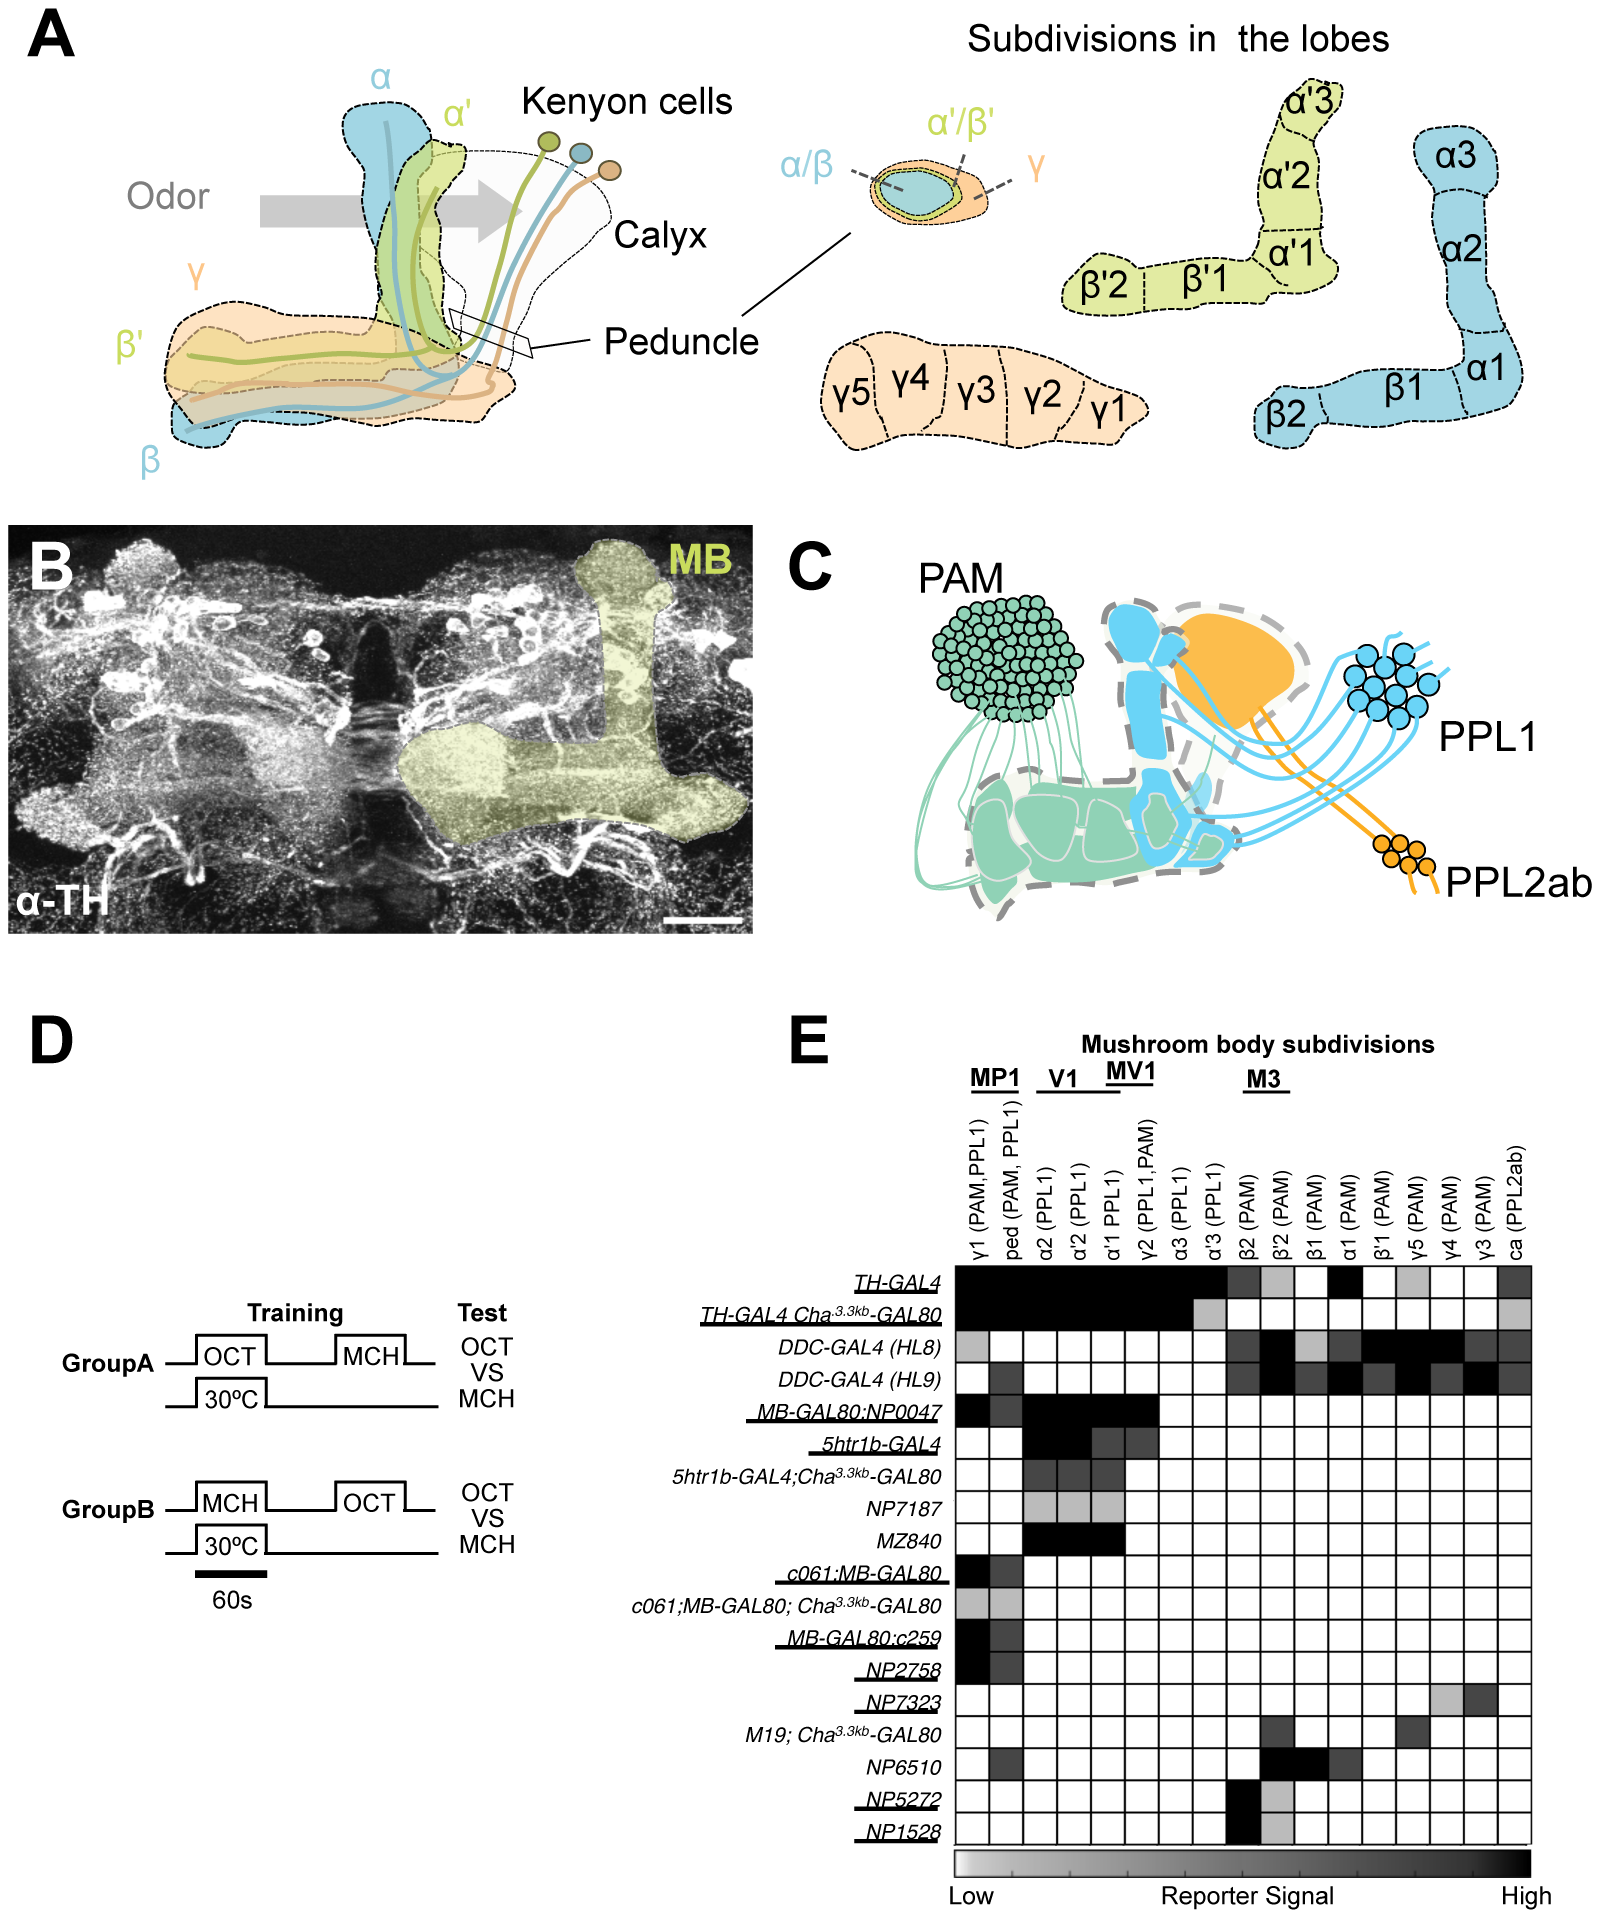 GAL4 drivers for dopaminergic neurons that project to the mushroom body.